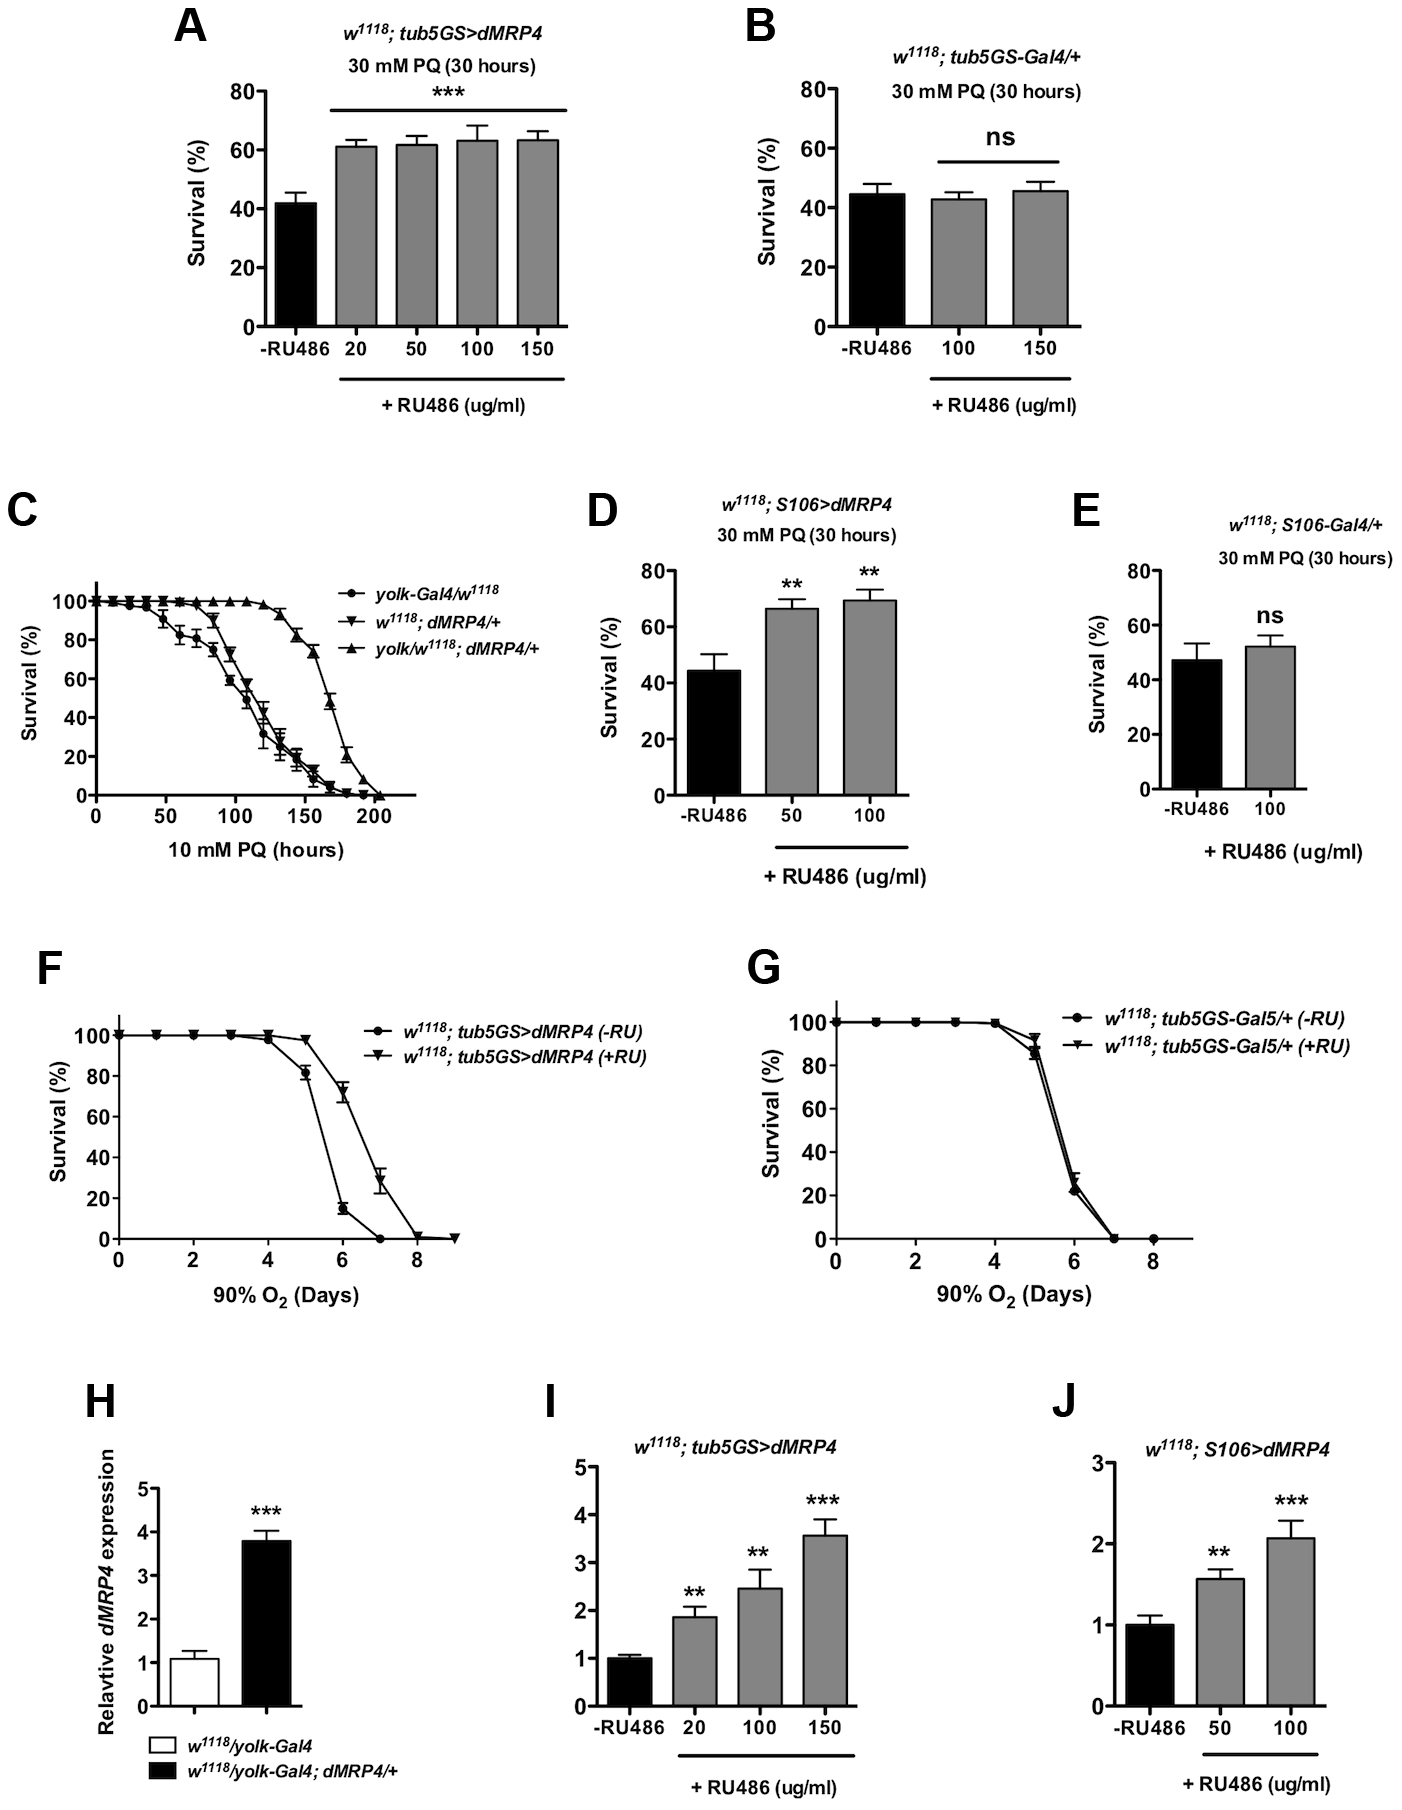 Elevated <i>dMRP4</i> expression increases oxidative resistance.